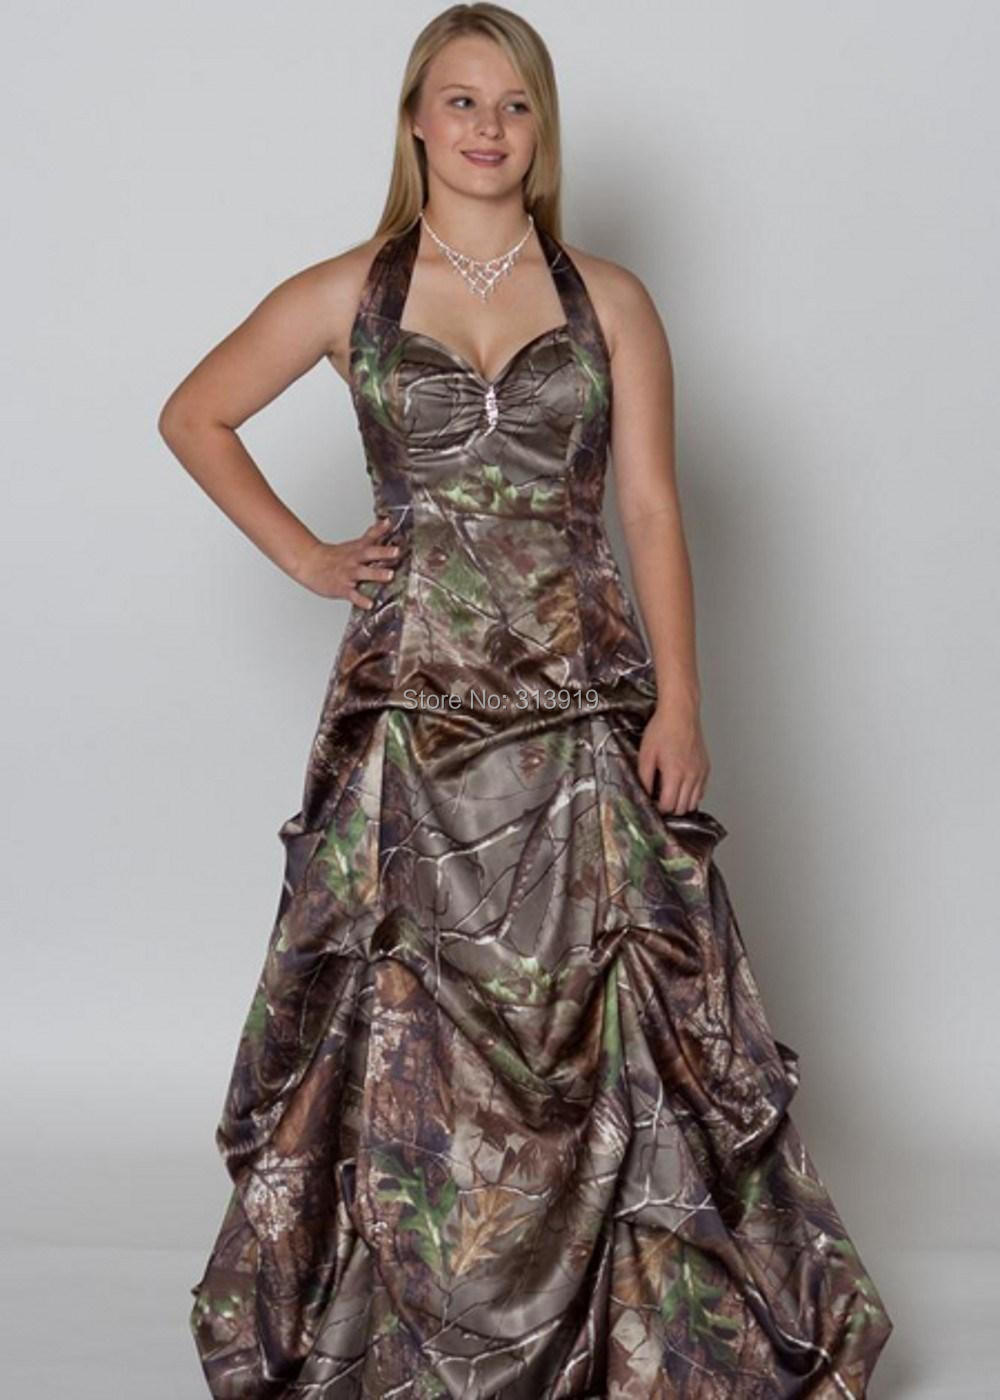 Realtree Camo Plus Size Dresses – fashion dresses